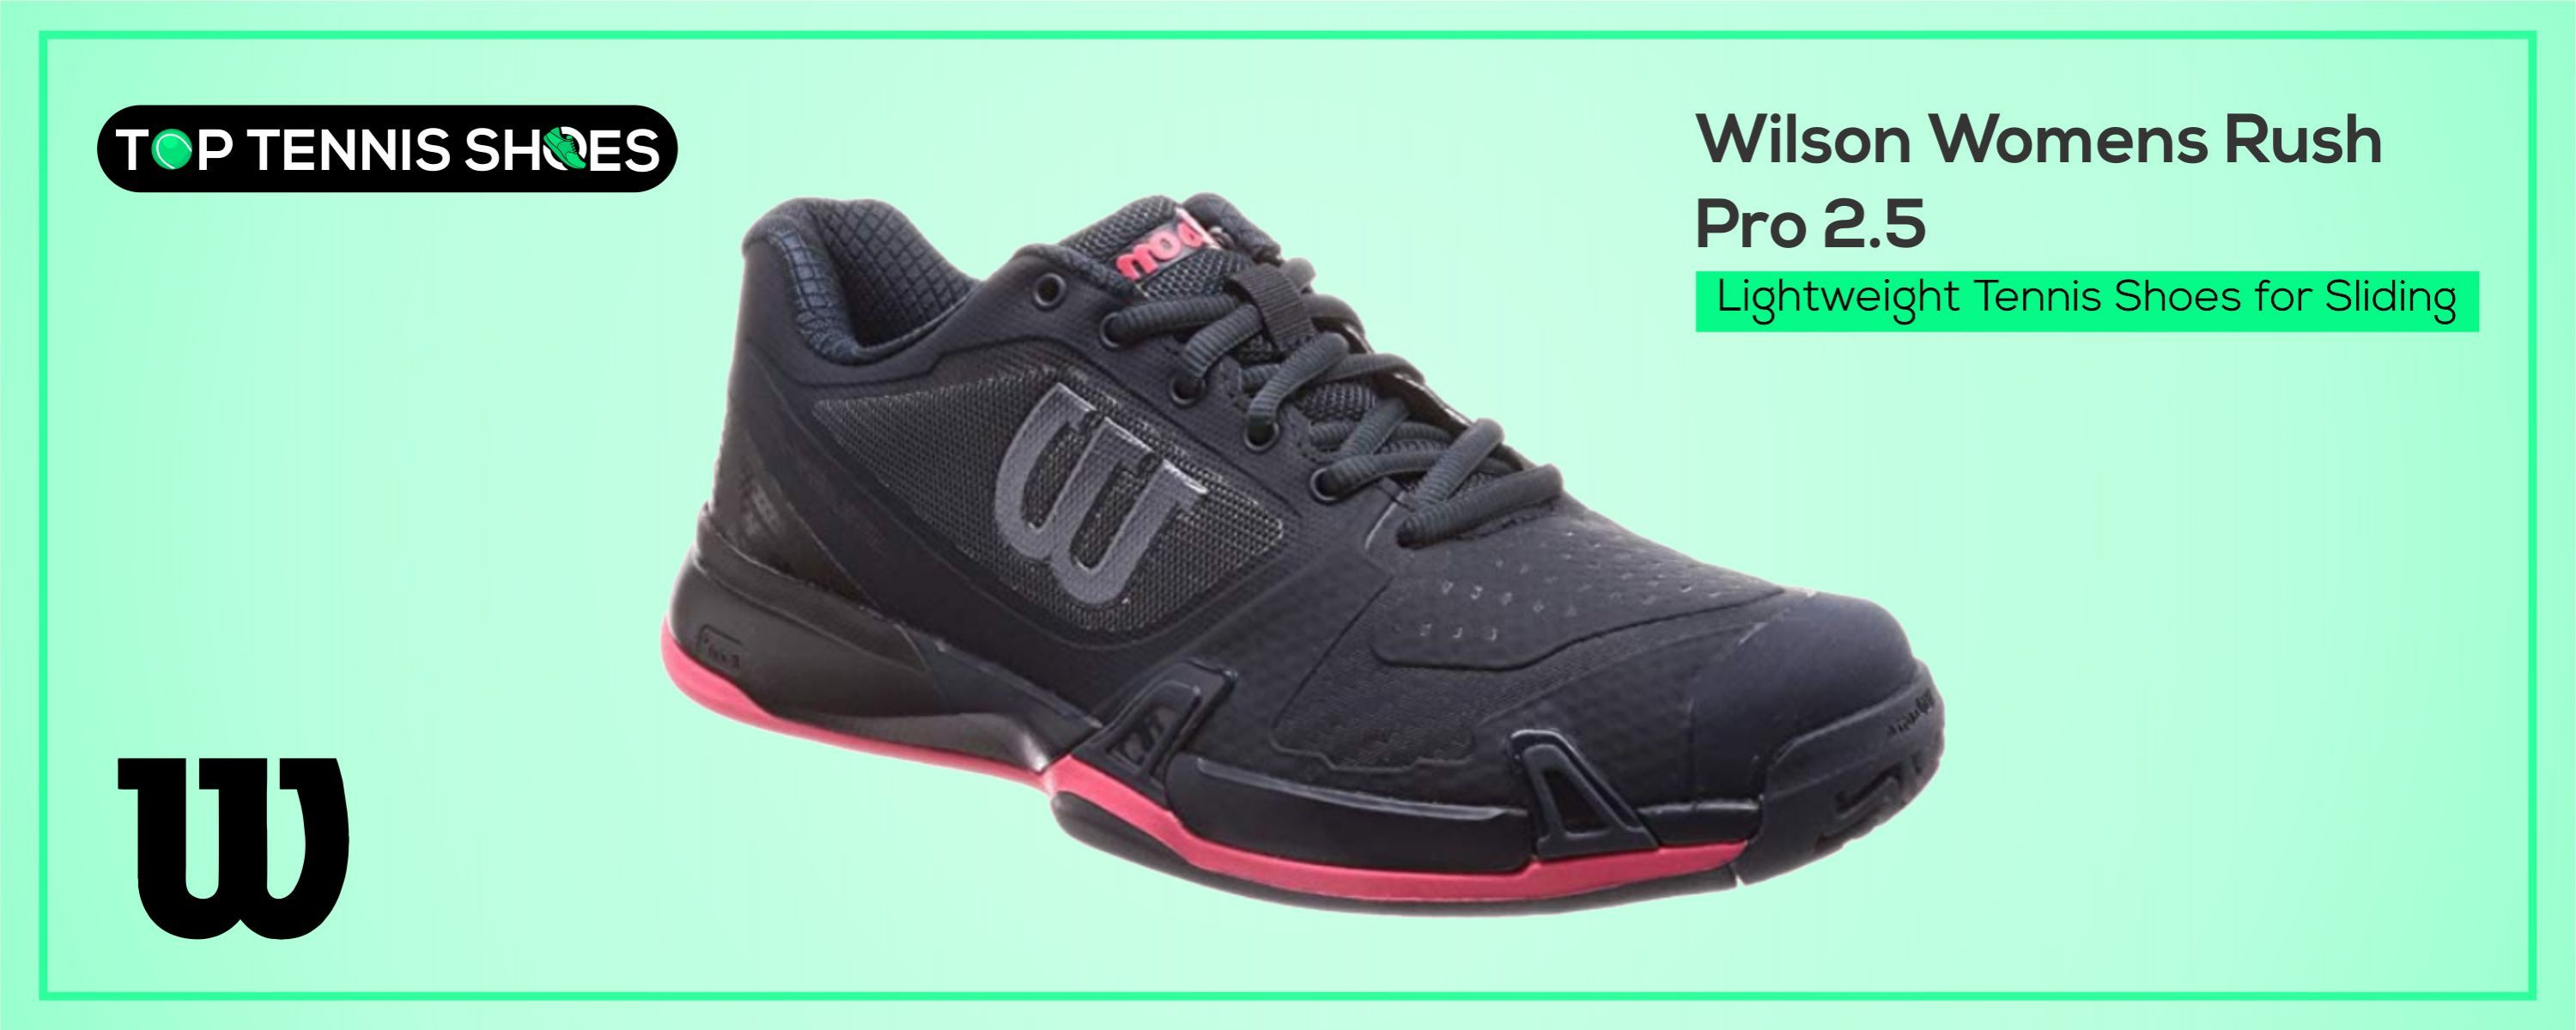 Wilson Tennis Shoes for Sliding